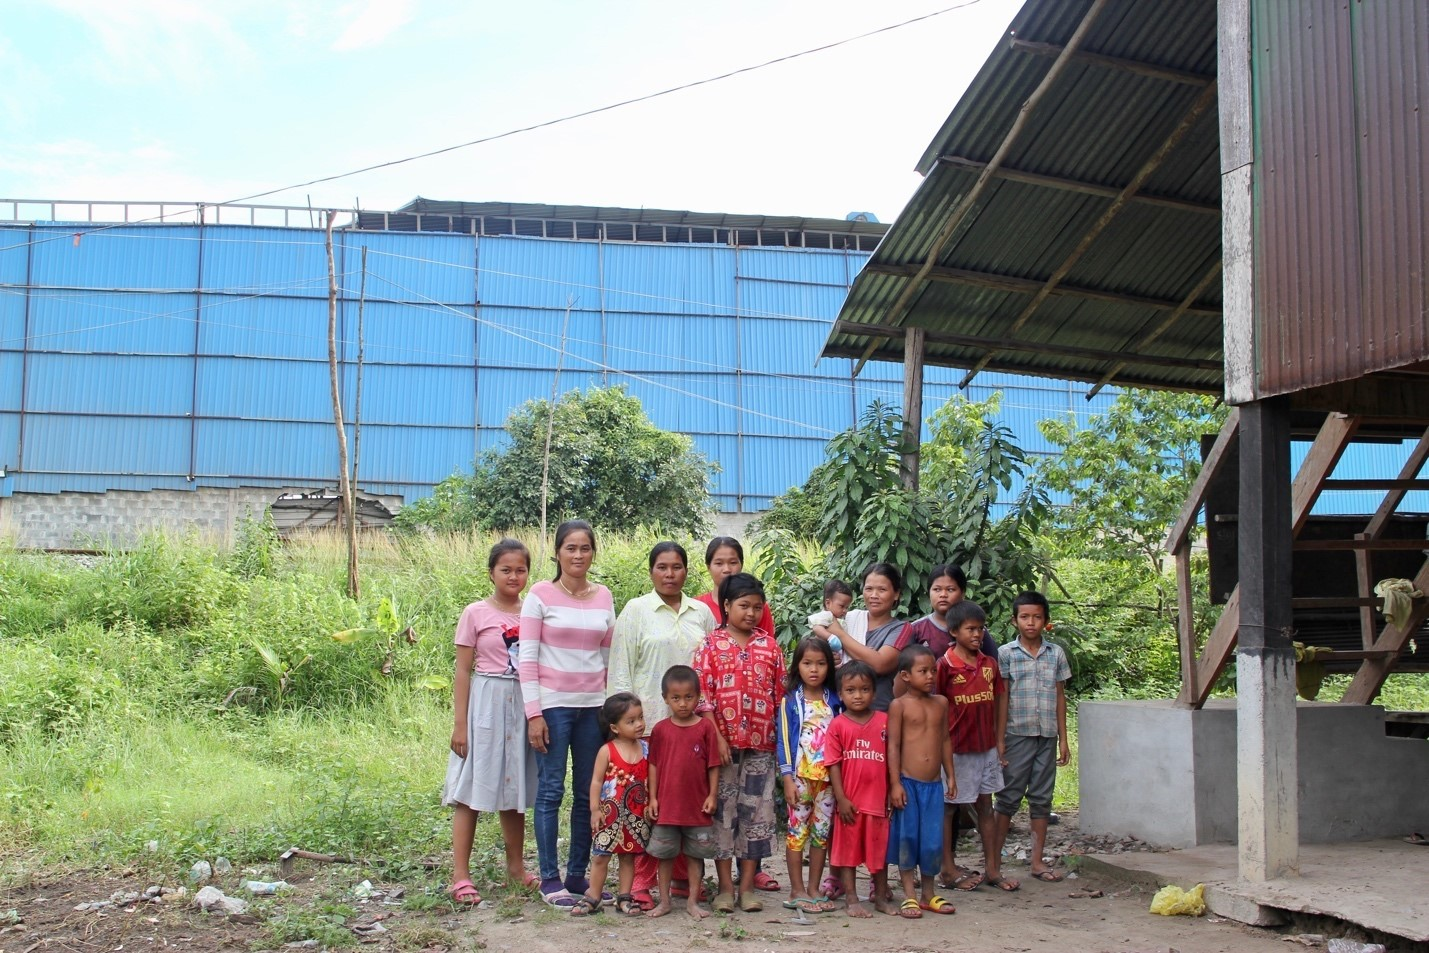 Peng Mom, Phok Nge, their children, and other neighbours with the coal ash processing plant behind them (Image: Lili Pike)